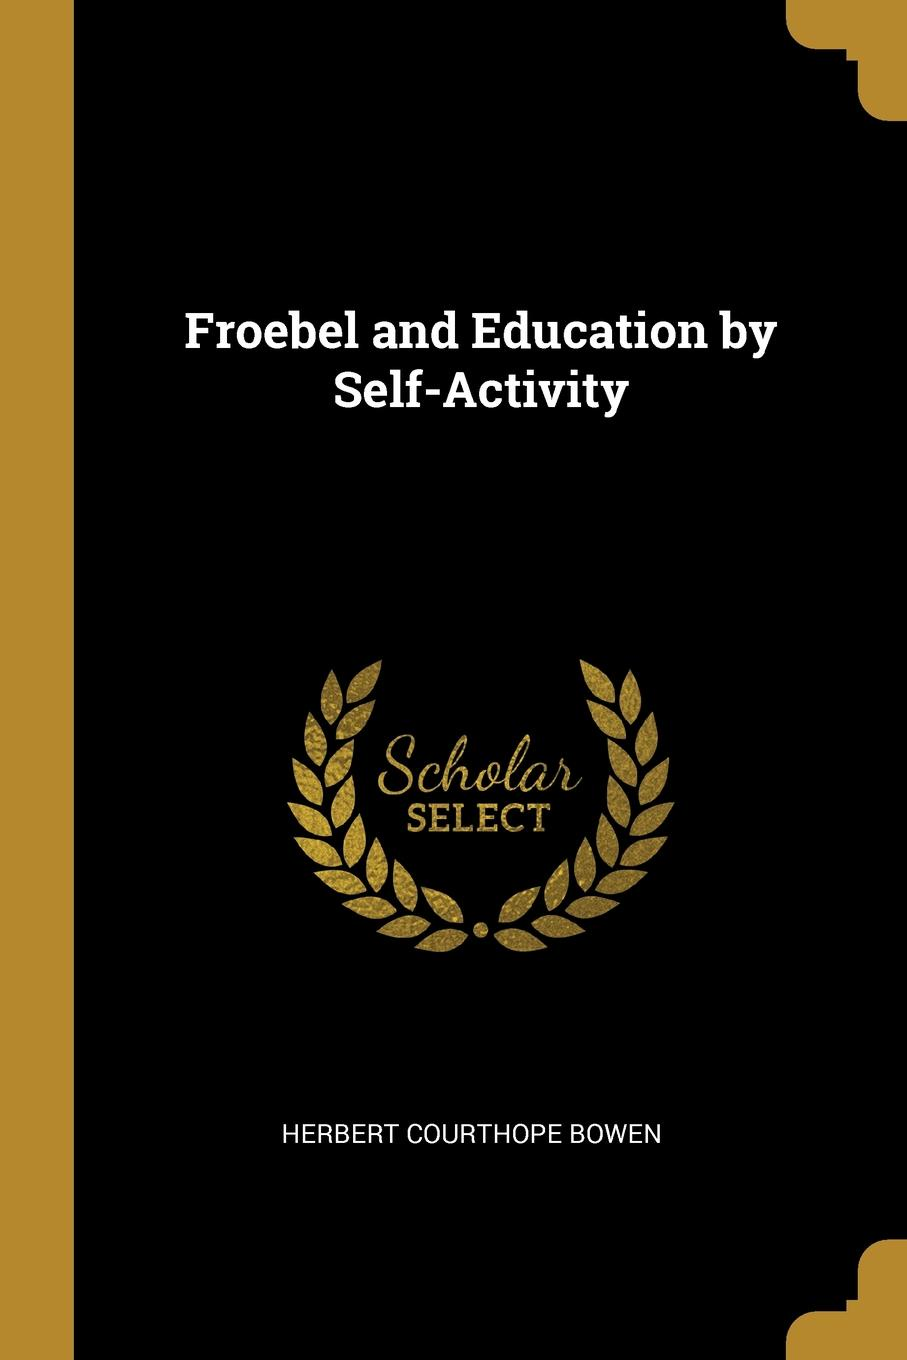 Herbert Courthope Bowen. Froebel and Education by Self-Activity